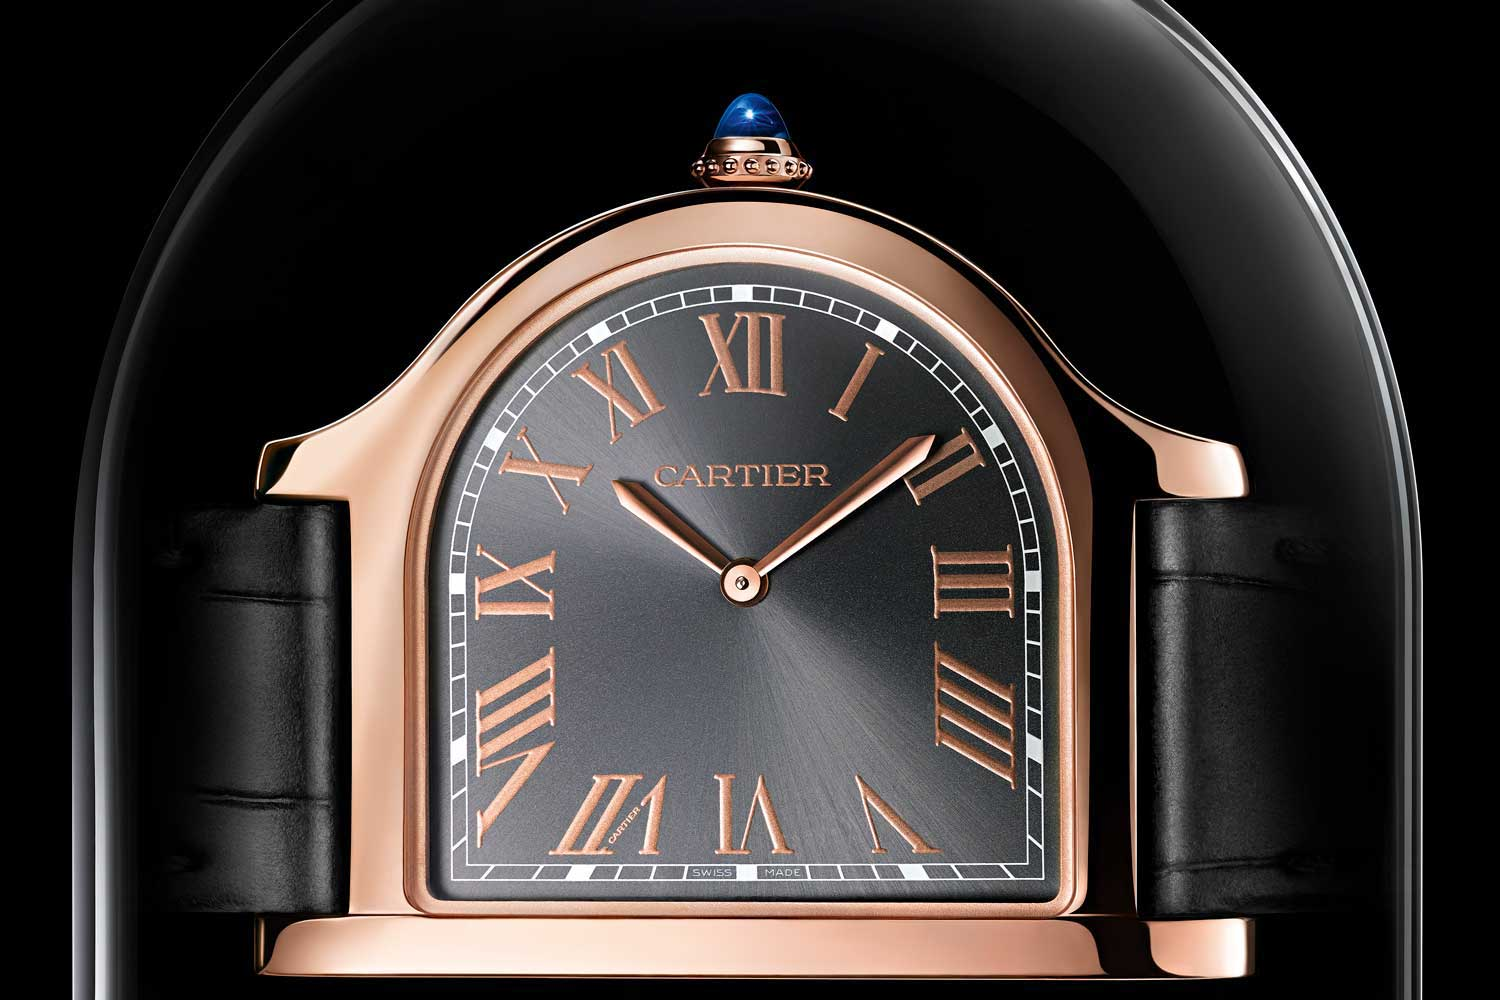 The bell-shaped Cartier Cloche from 1922 made a comeback as a limited edition series this year